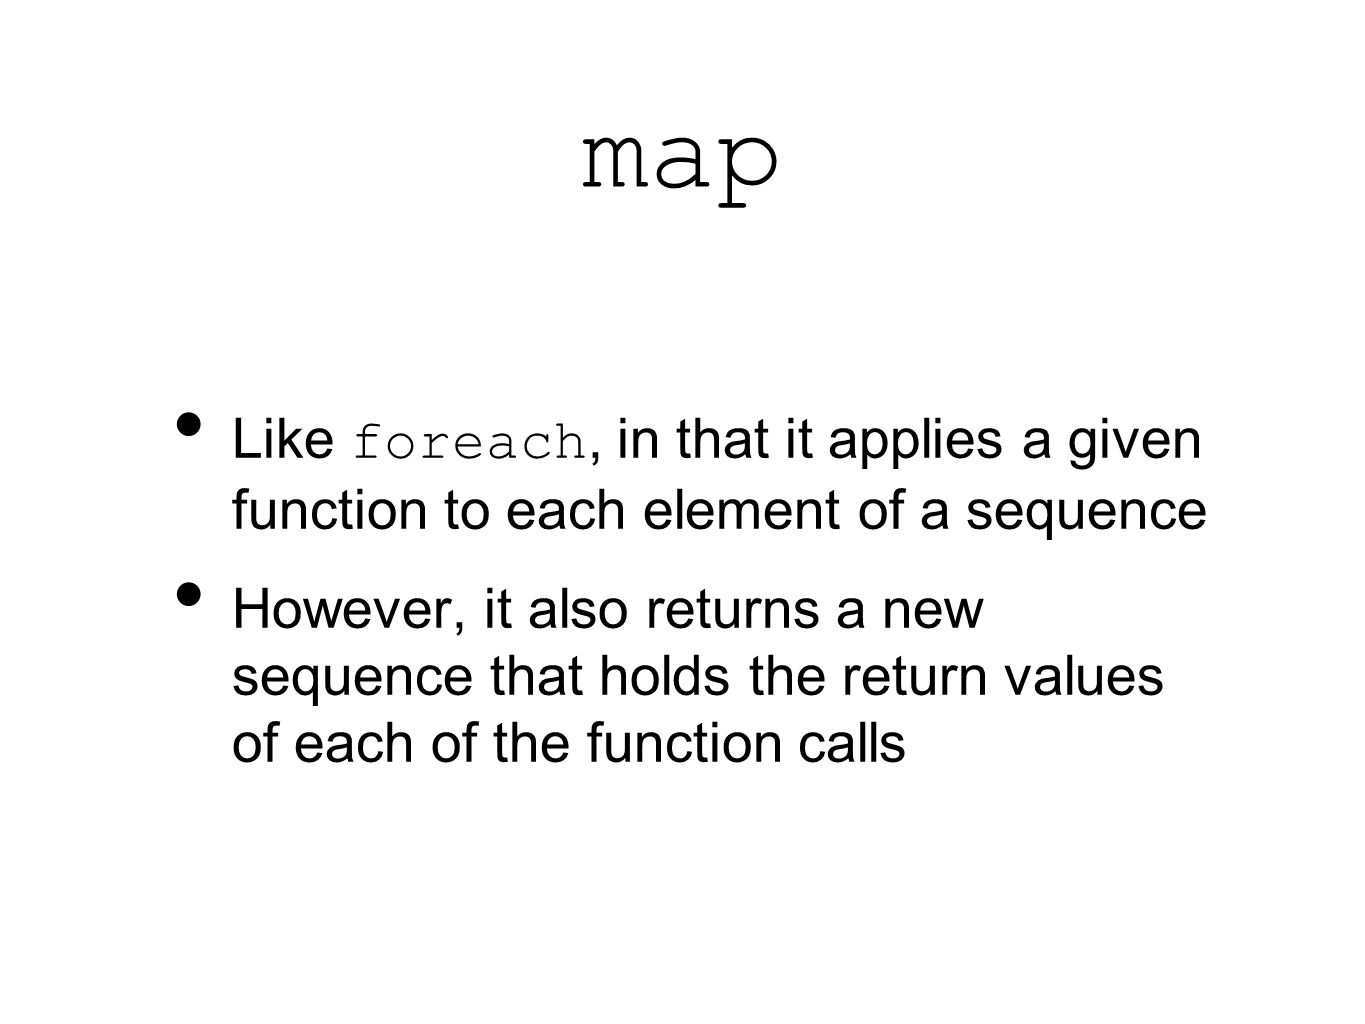 map Like foreach, in that it applies a given function to each element of a sequence However, it also returns a new sequence that holds the return values of each of the function calls